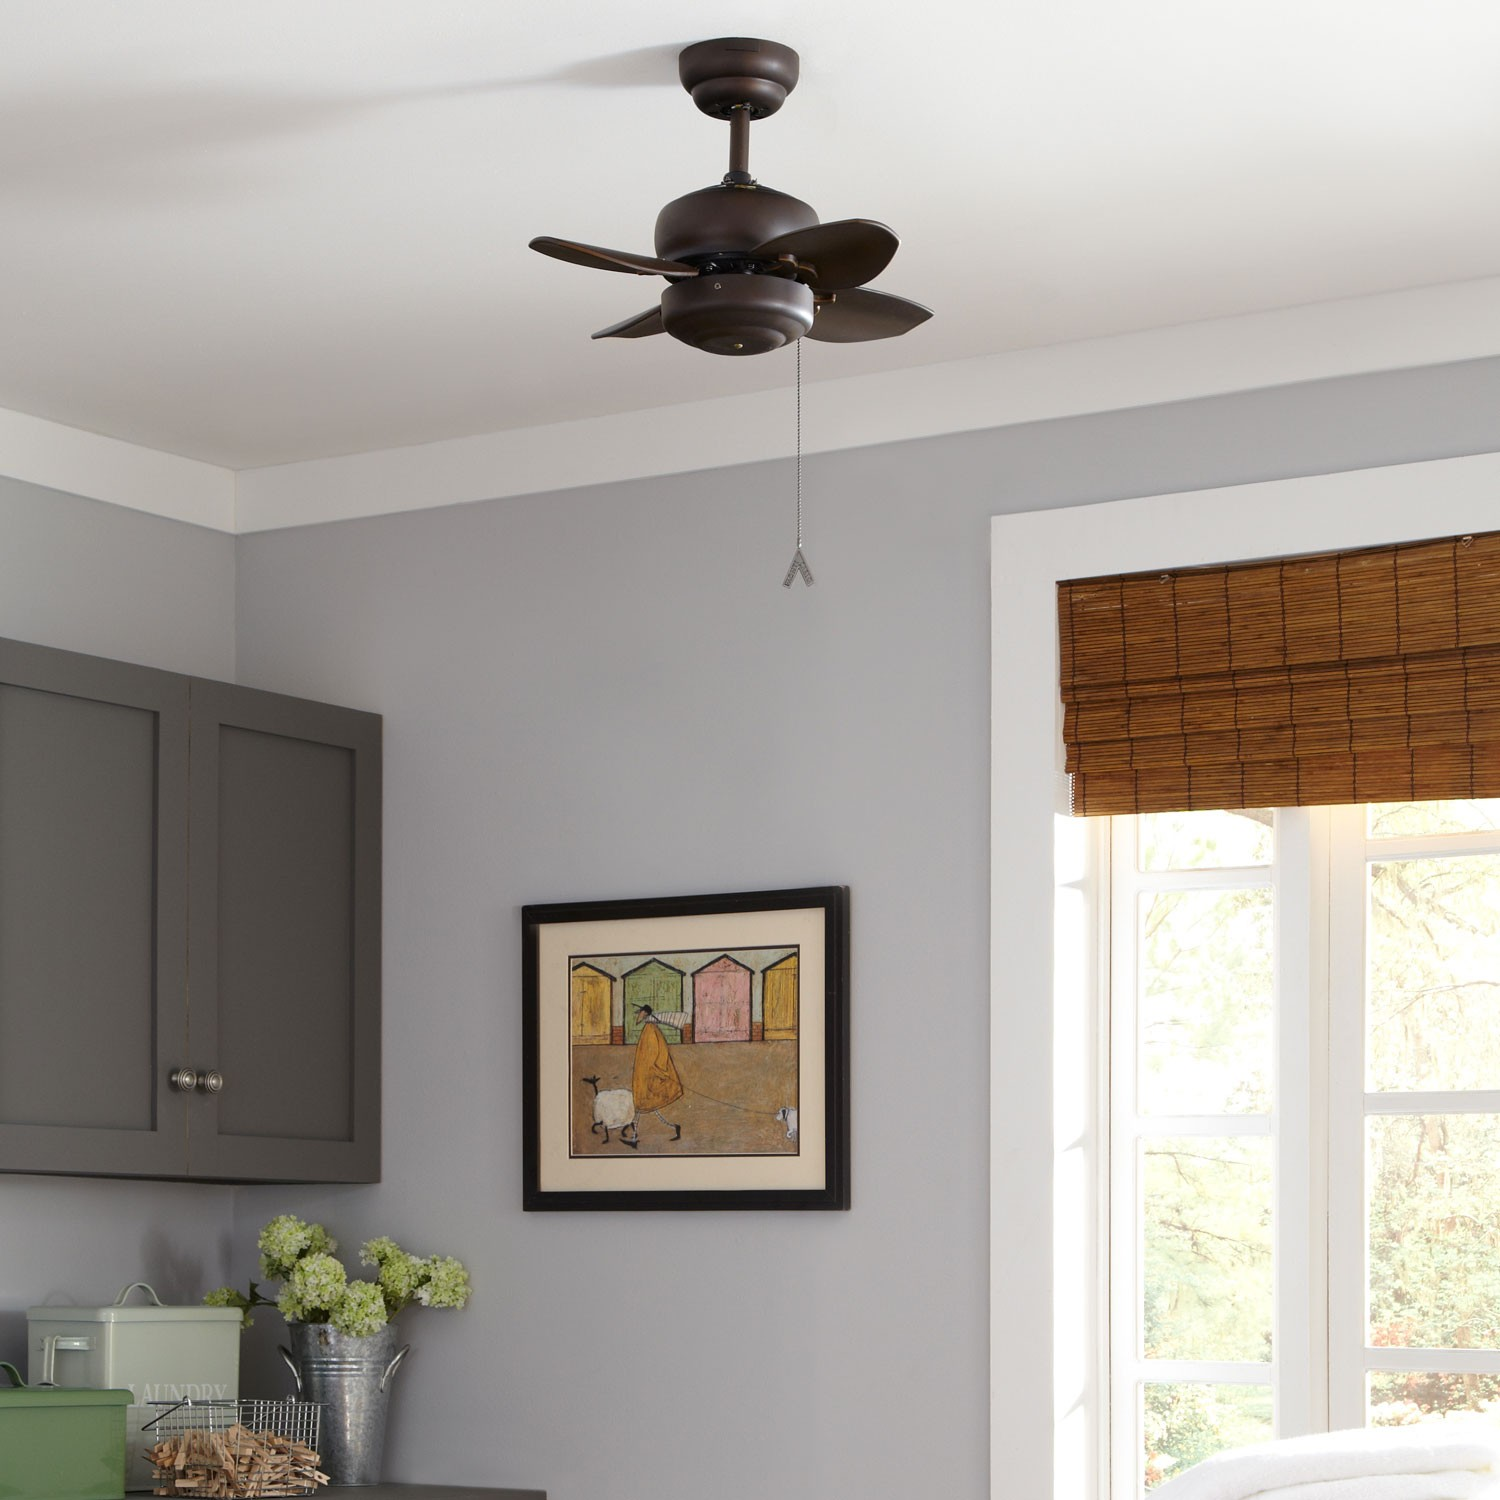 How to choose the best fan size for you for Ceiling fan size for room